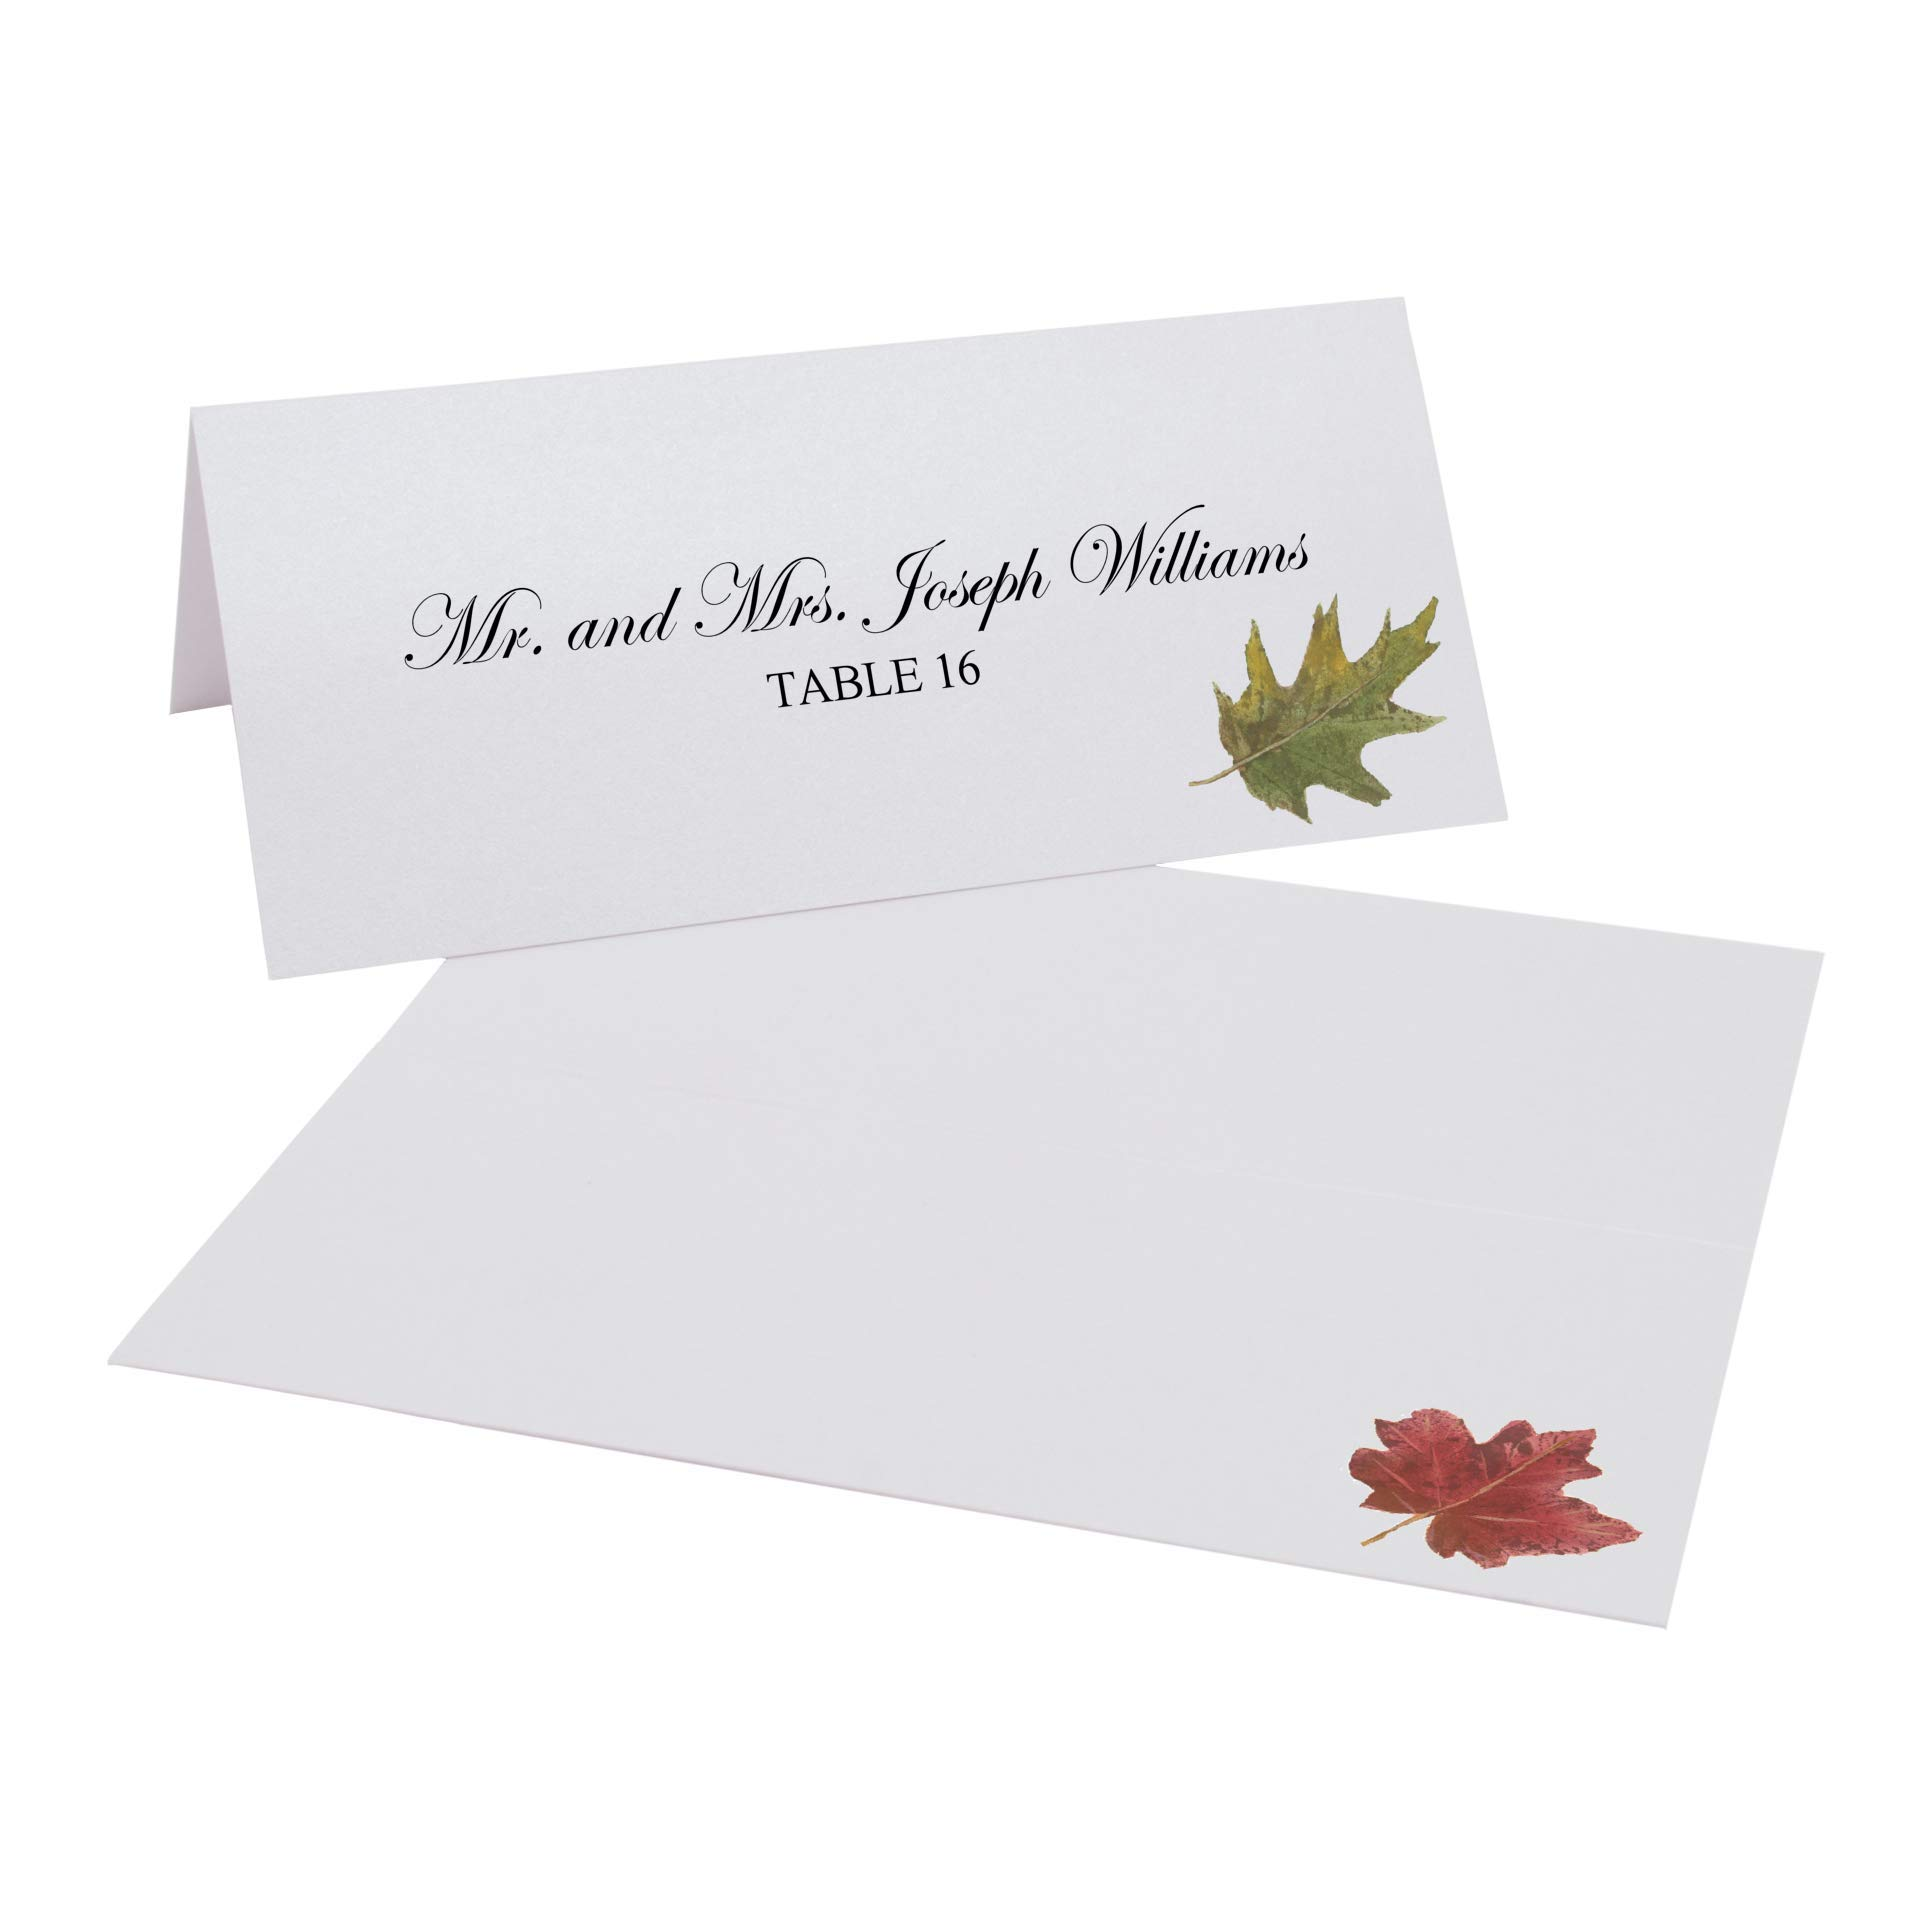 Documents and Designs Assorted Autumn Leaf Place Cards, Set of 150 (25 Sheets) by Documents and Designs